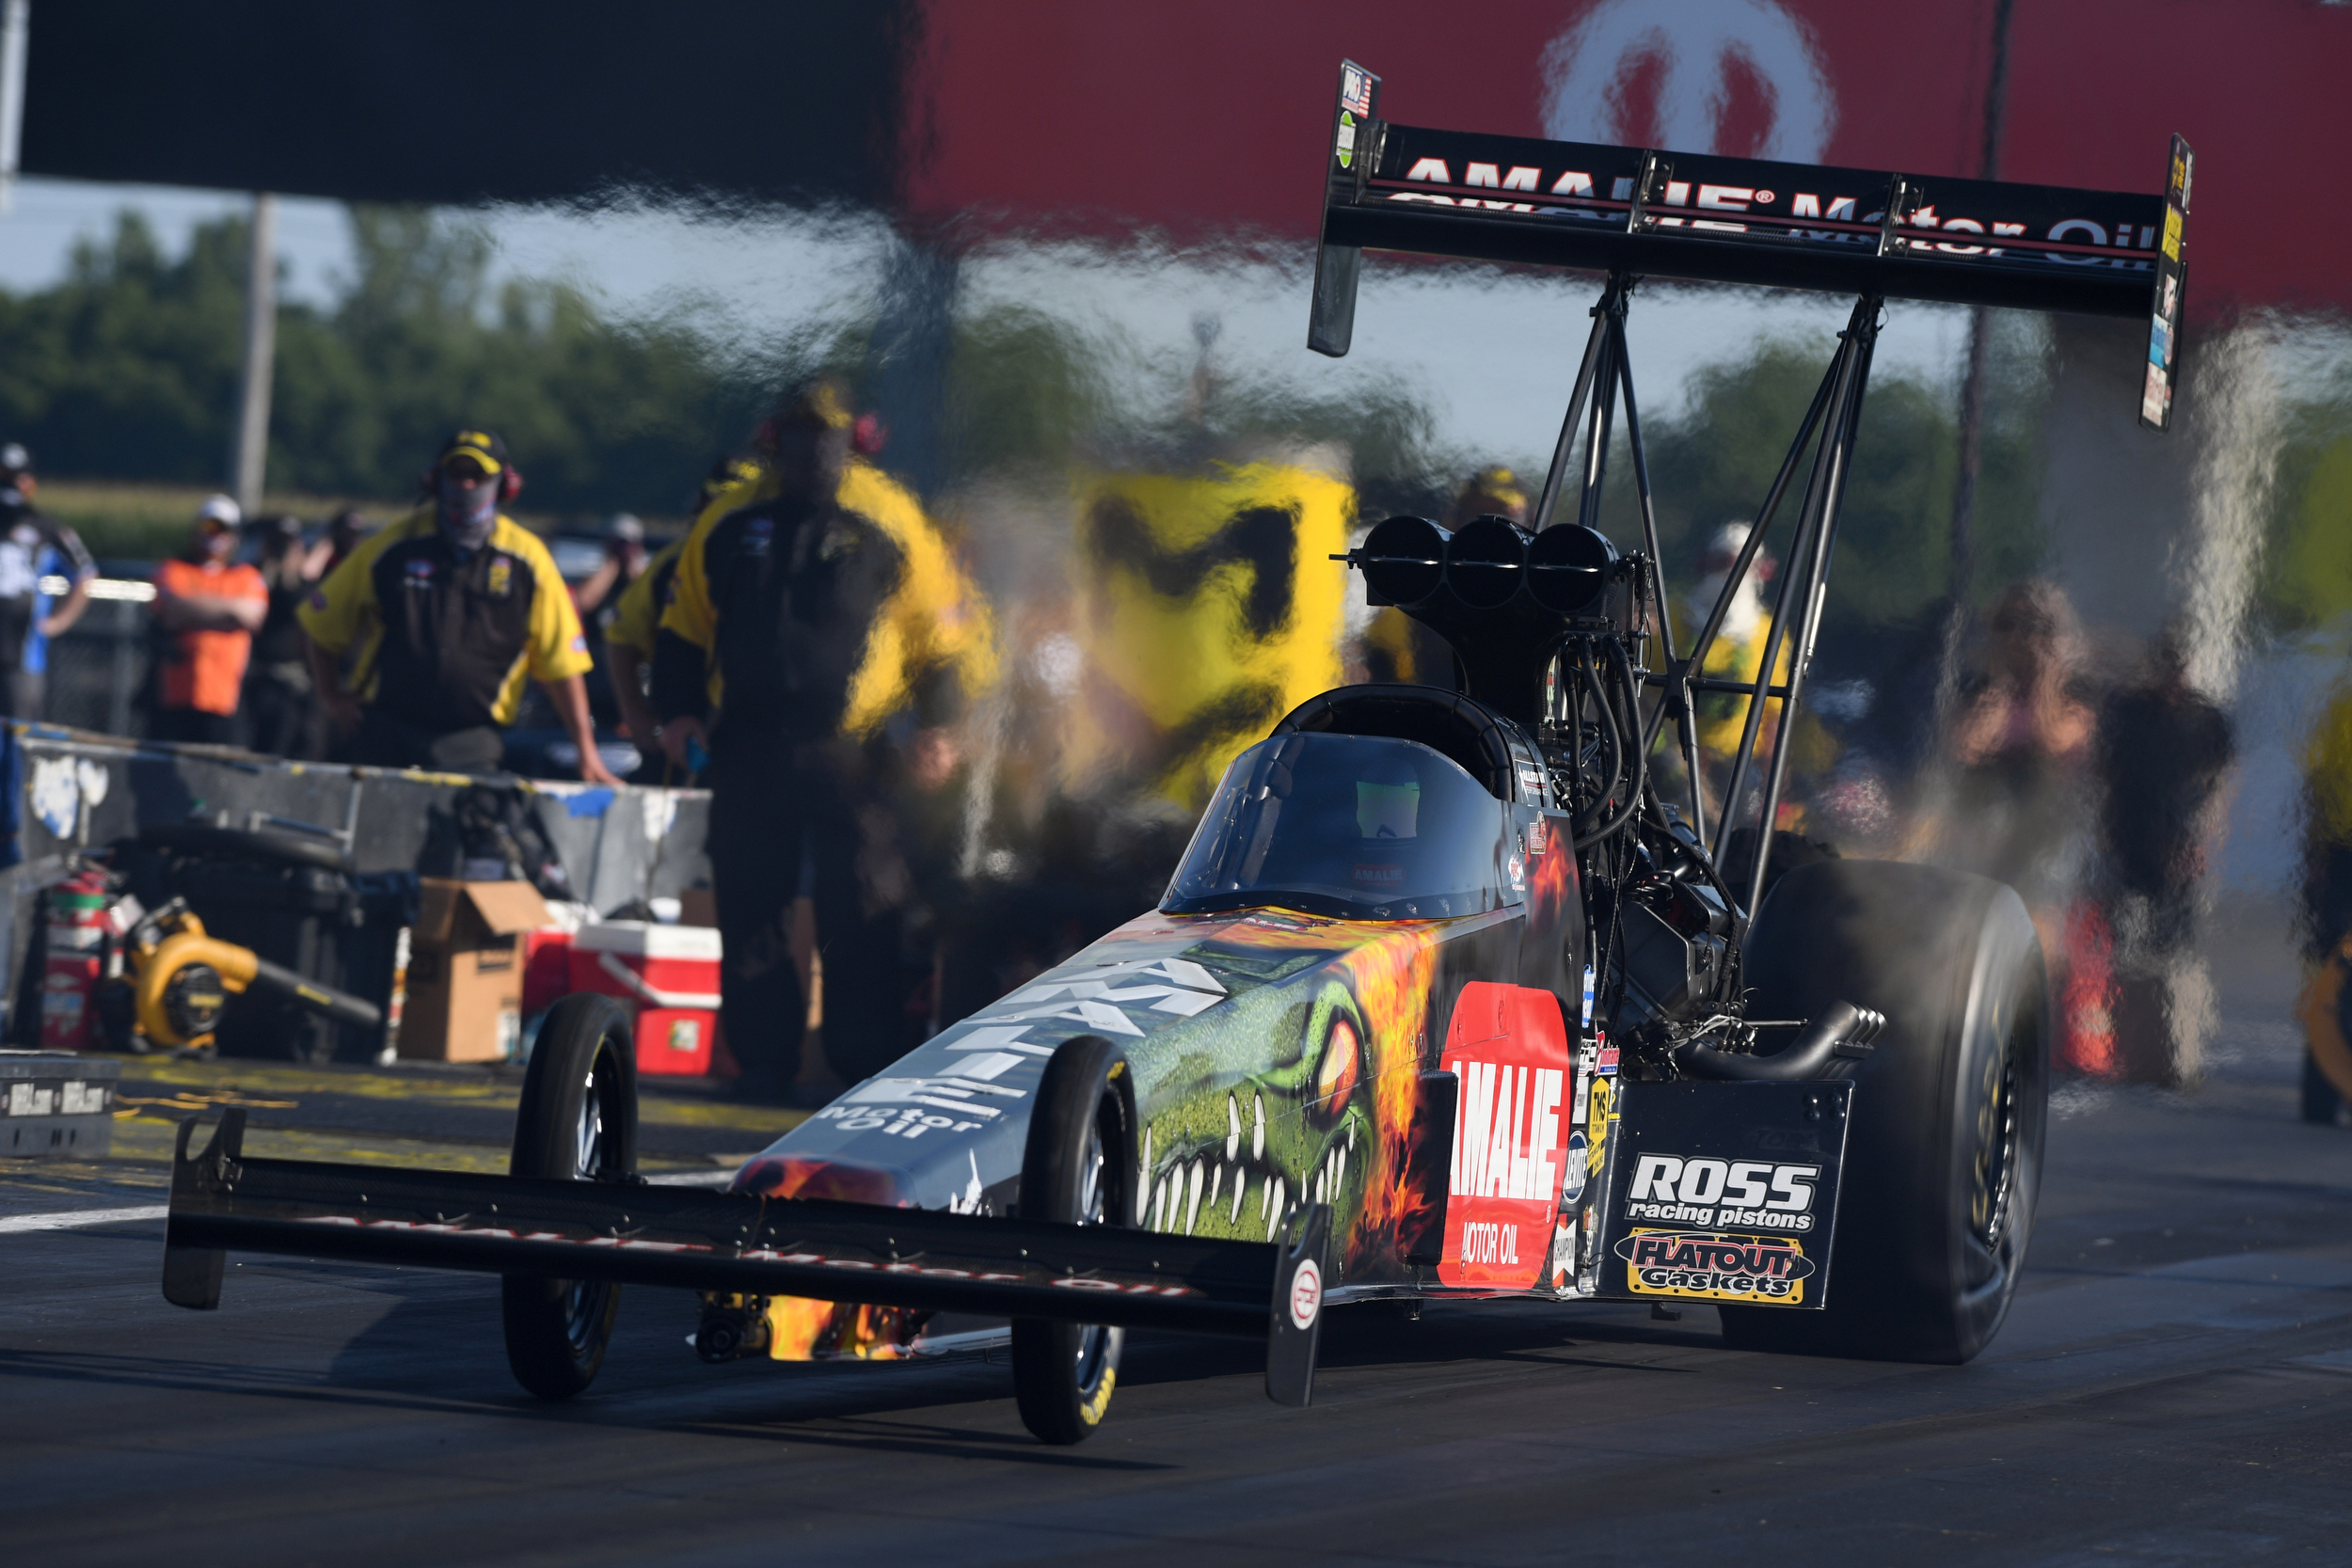 Amalie Motor Oil sponsored Top Fuel Dragster pilot Terry McMillen racing on Saturday at the Dodge NHRA Indy Nationals presented by Pennzoil